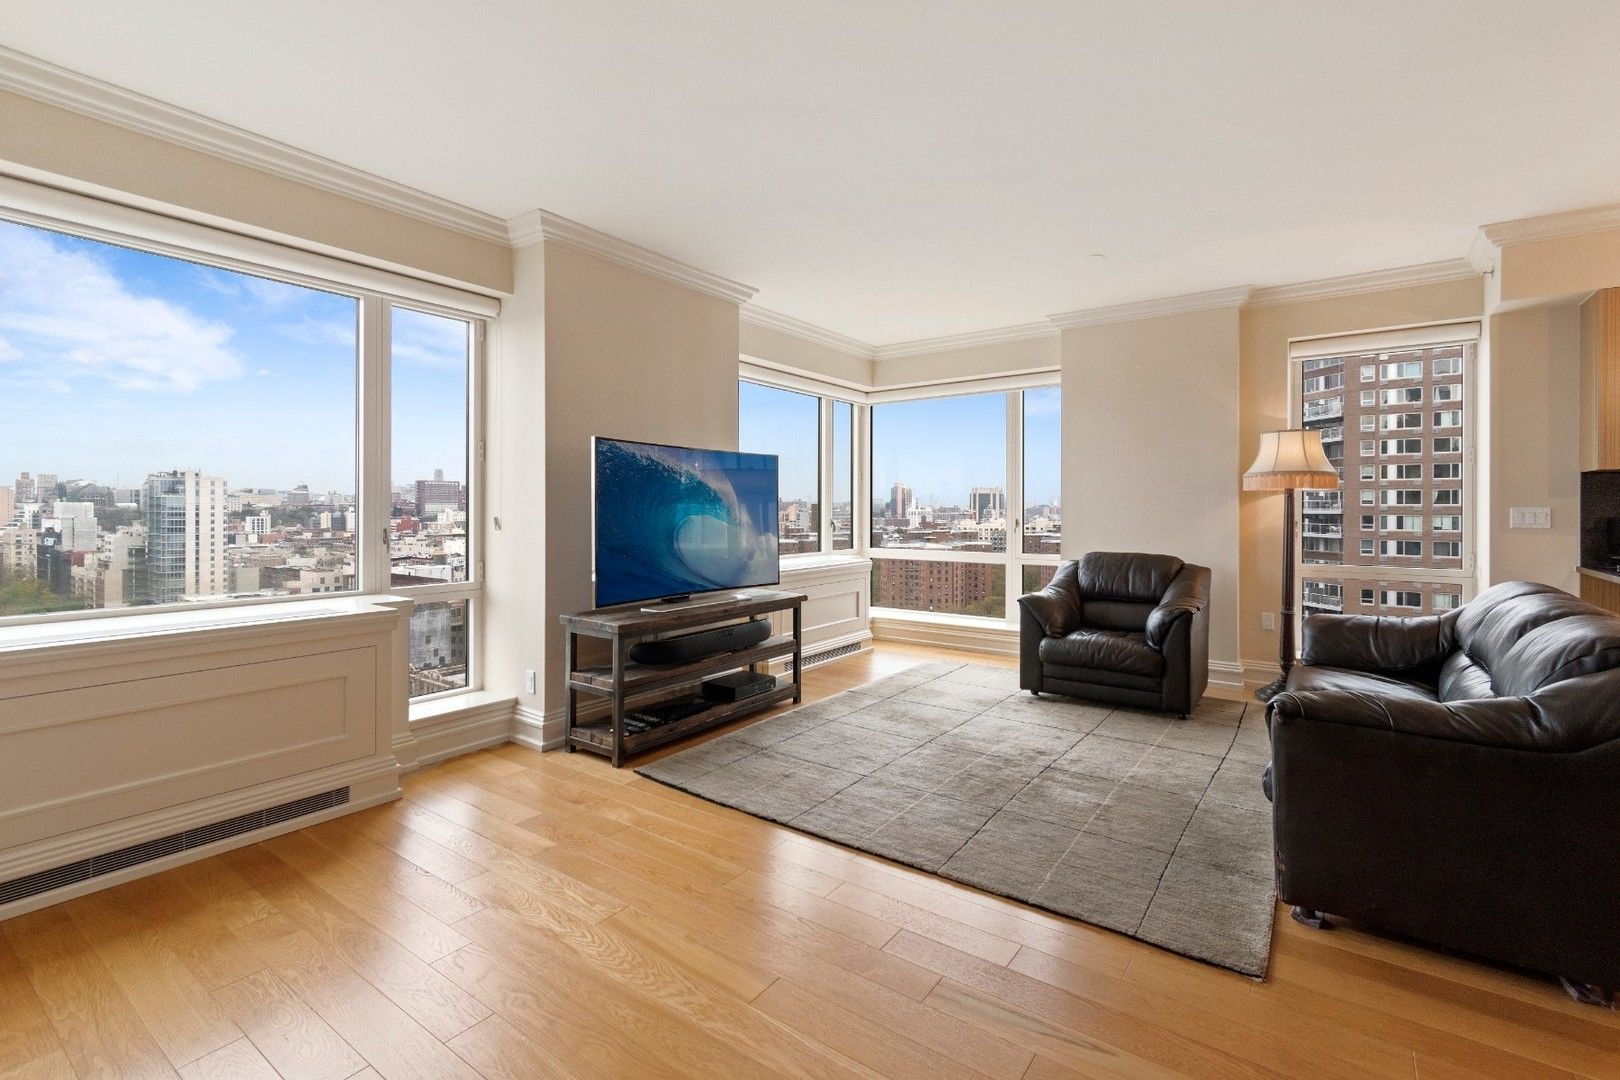 Apartment for sale at 1280 Fifth Avenue, Apt 18A